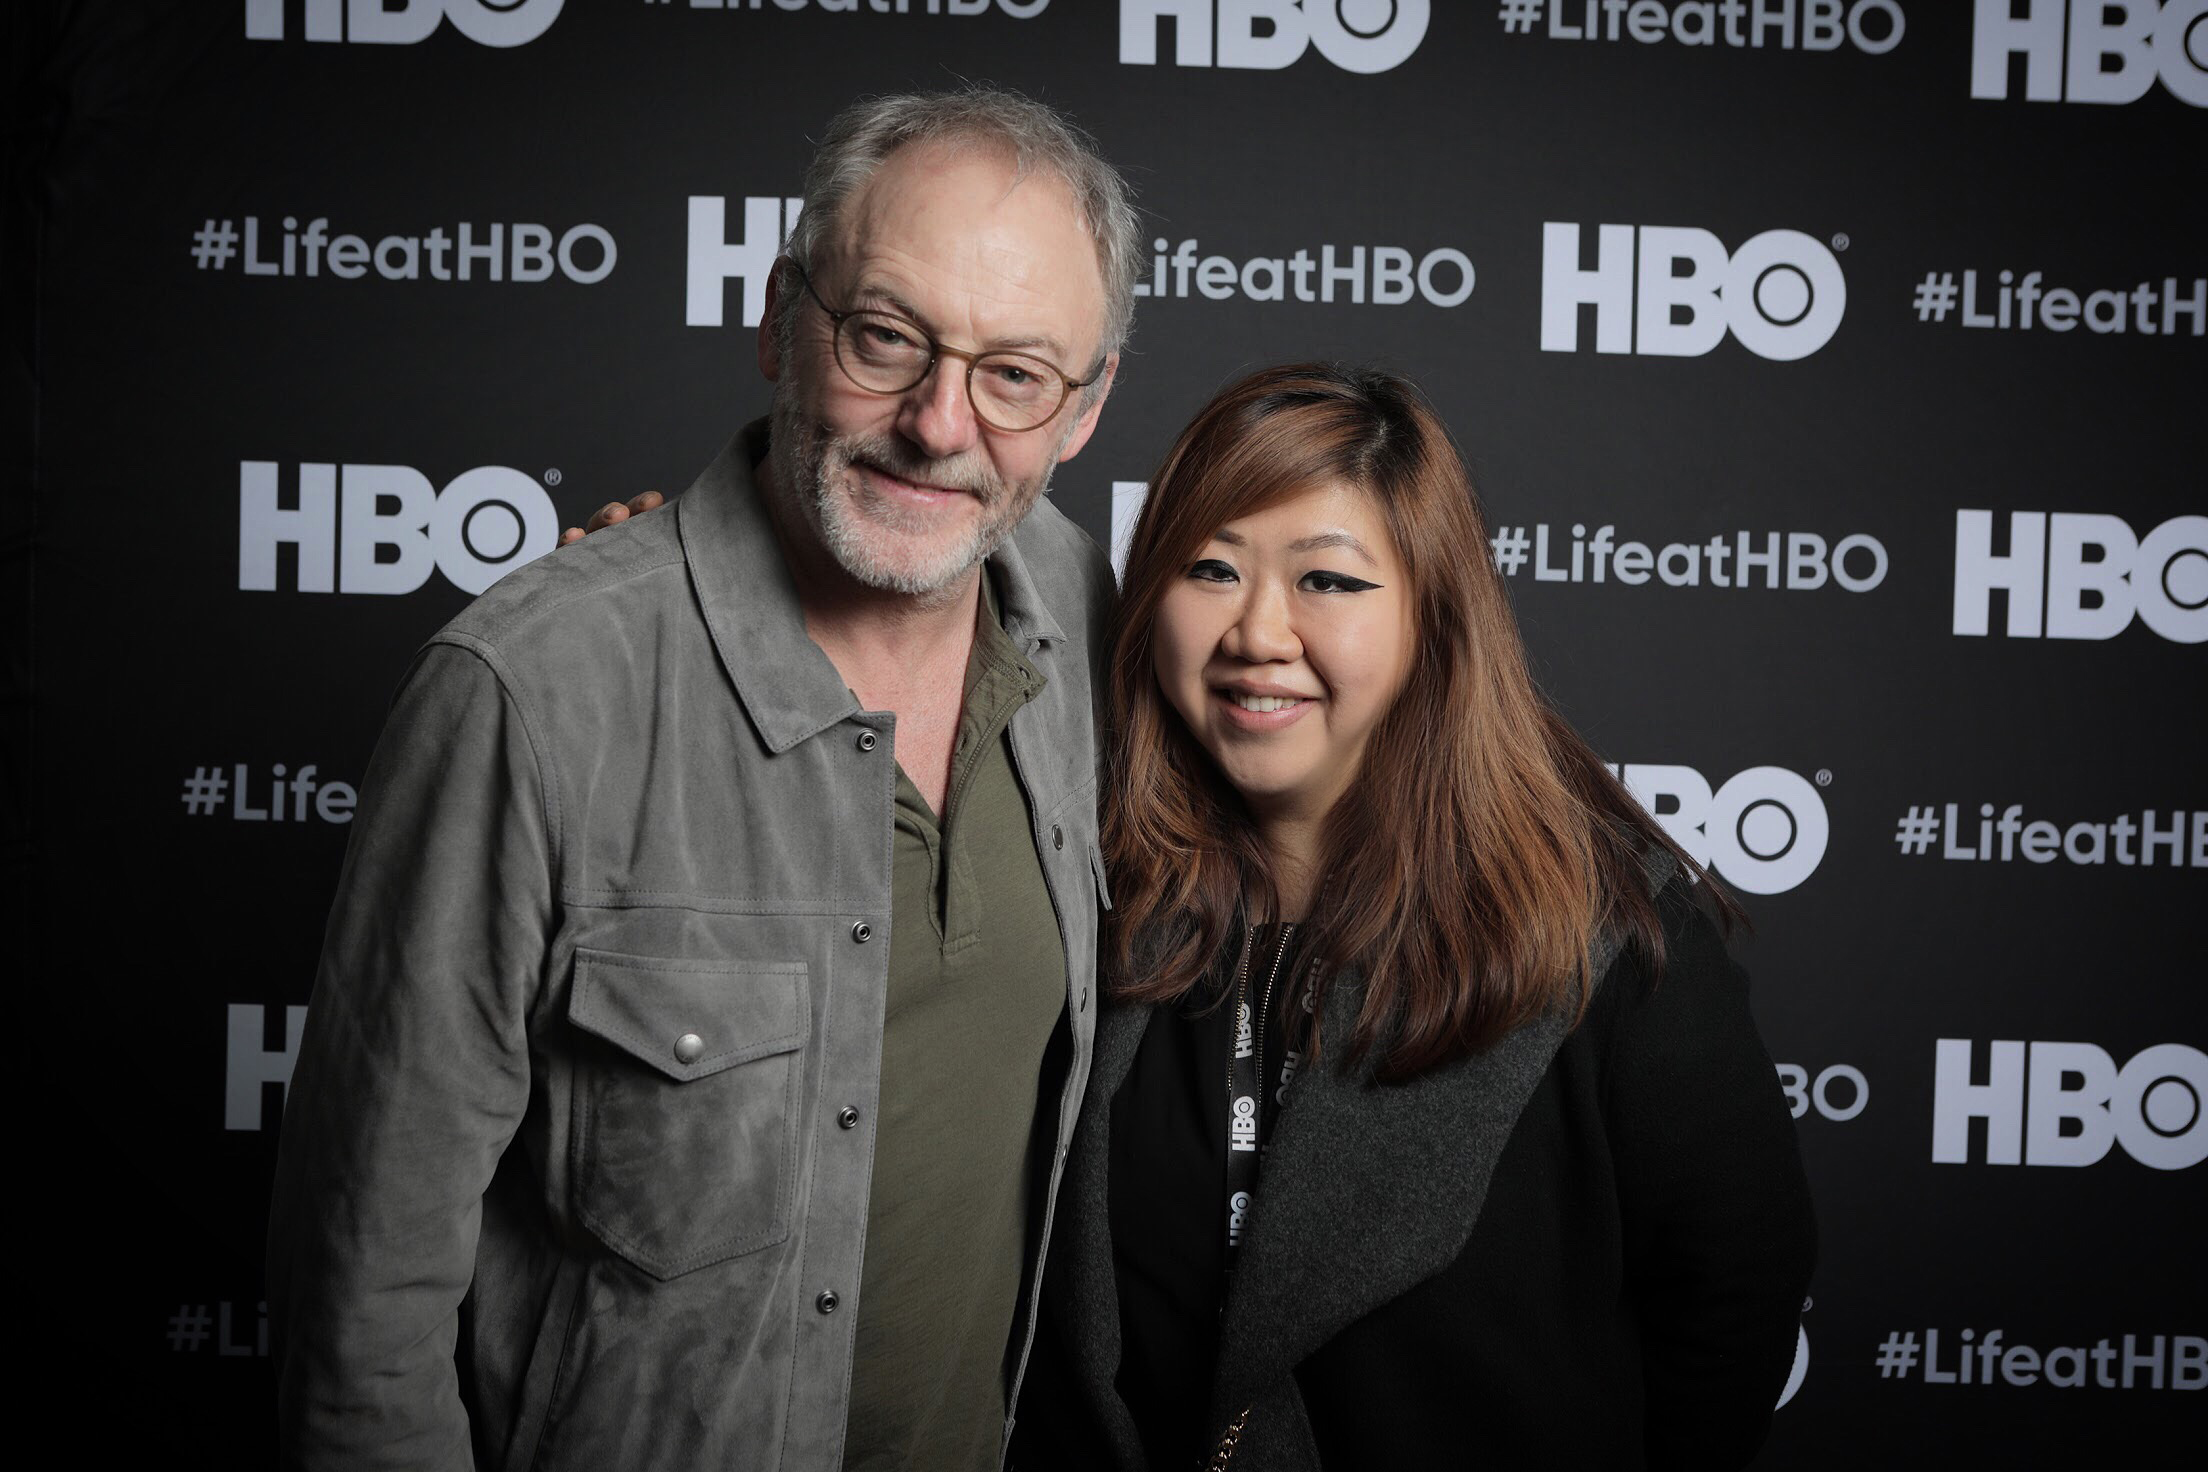 HBO's Game of Throne season 8 premiere at Hudson Yards